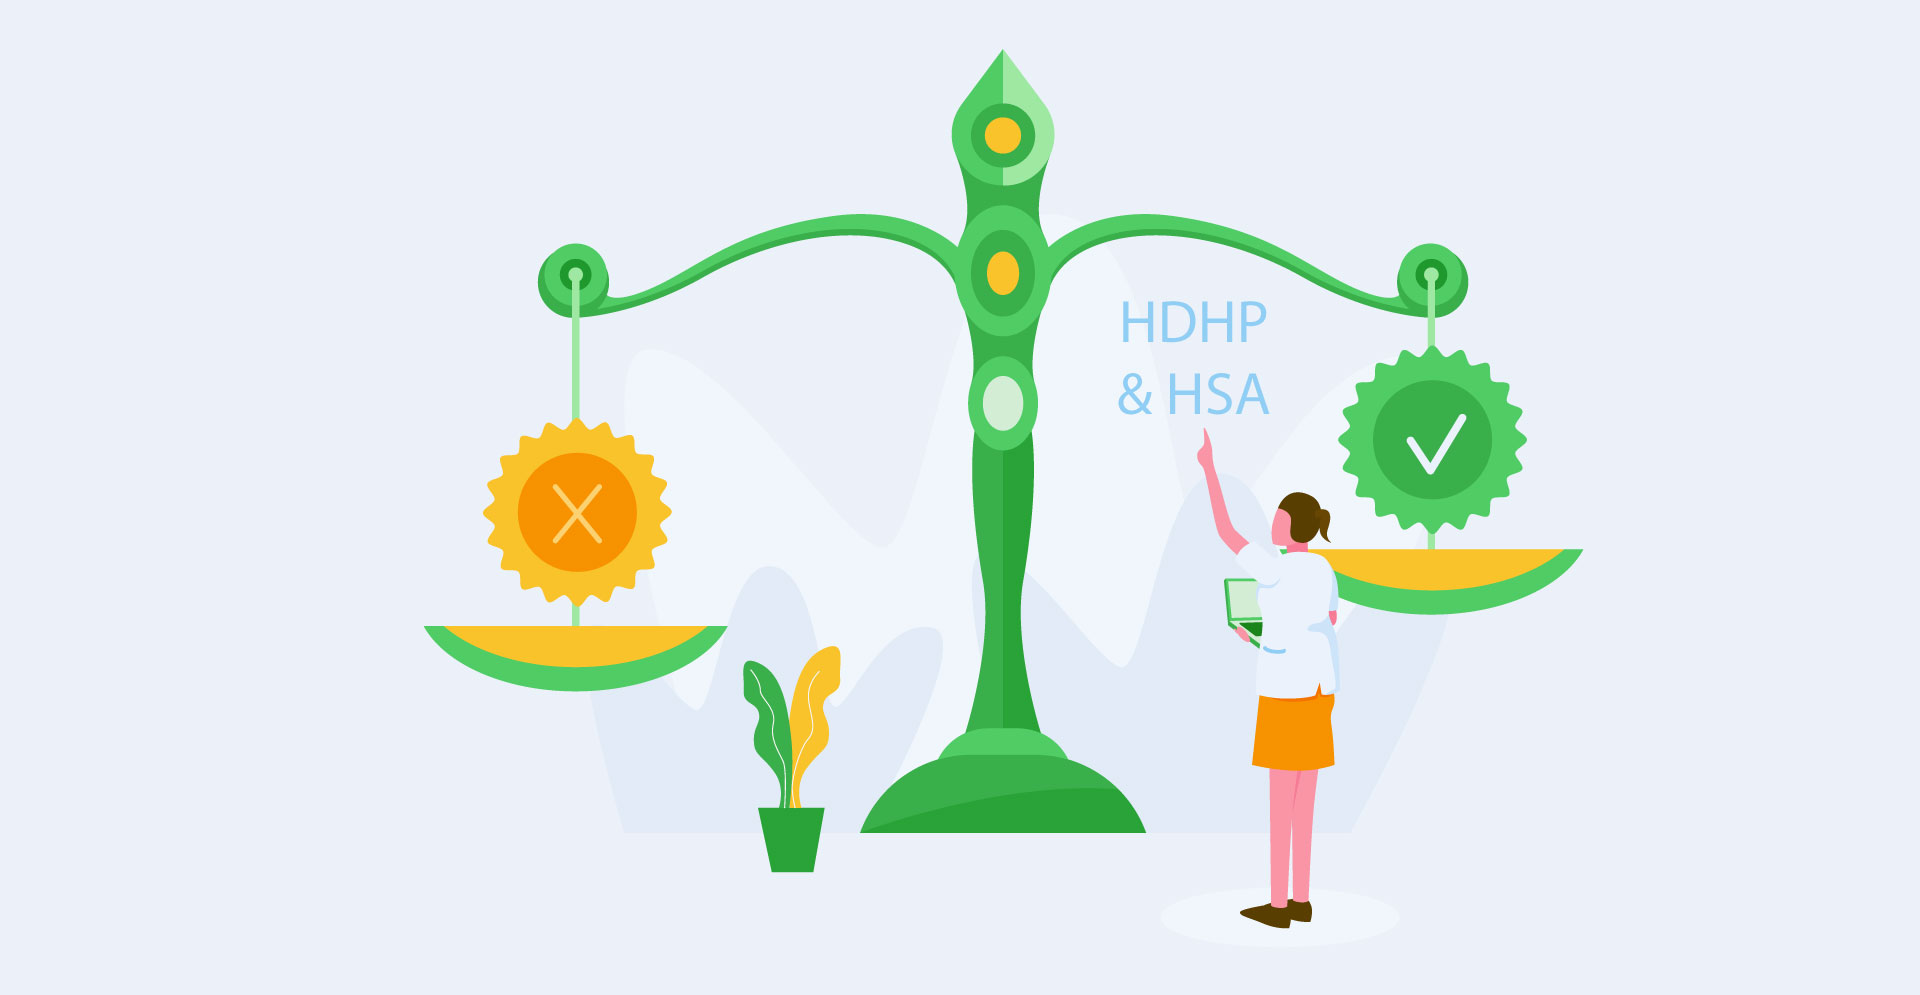 Why Choose an HDHP and HSA?